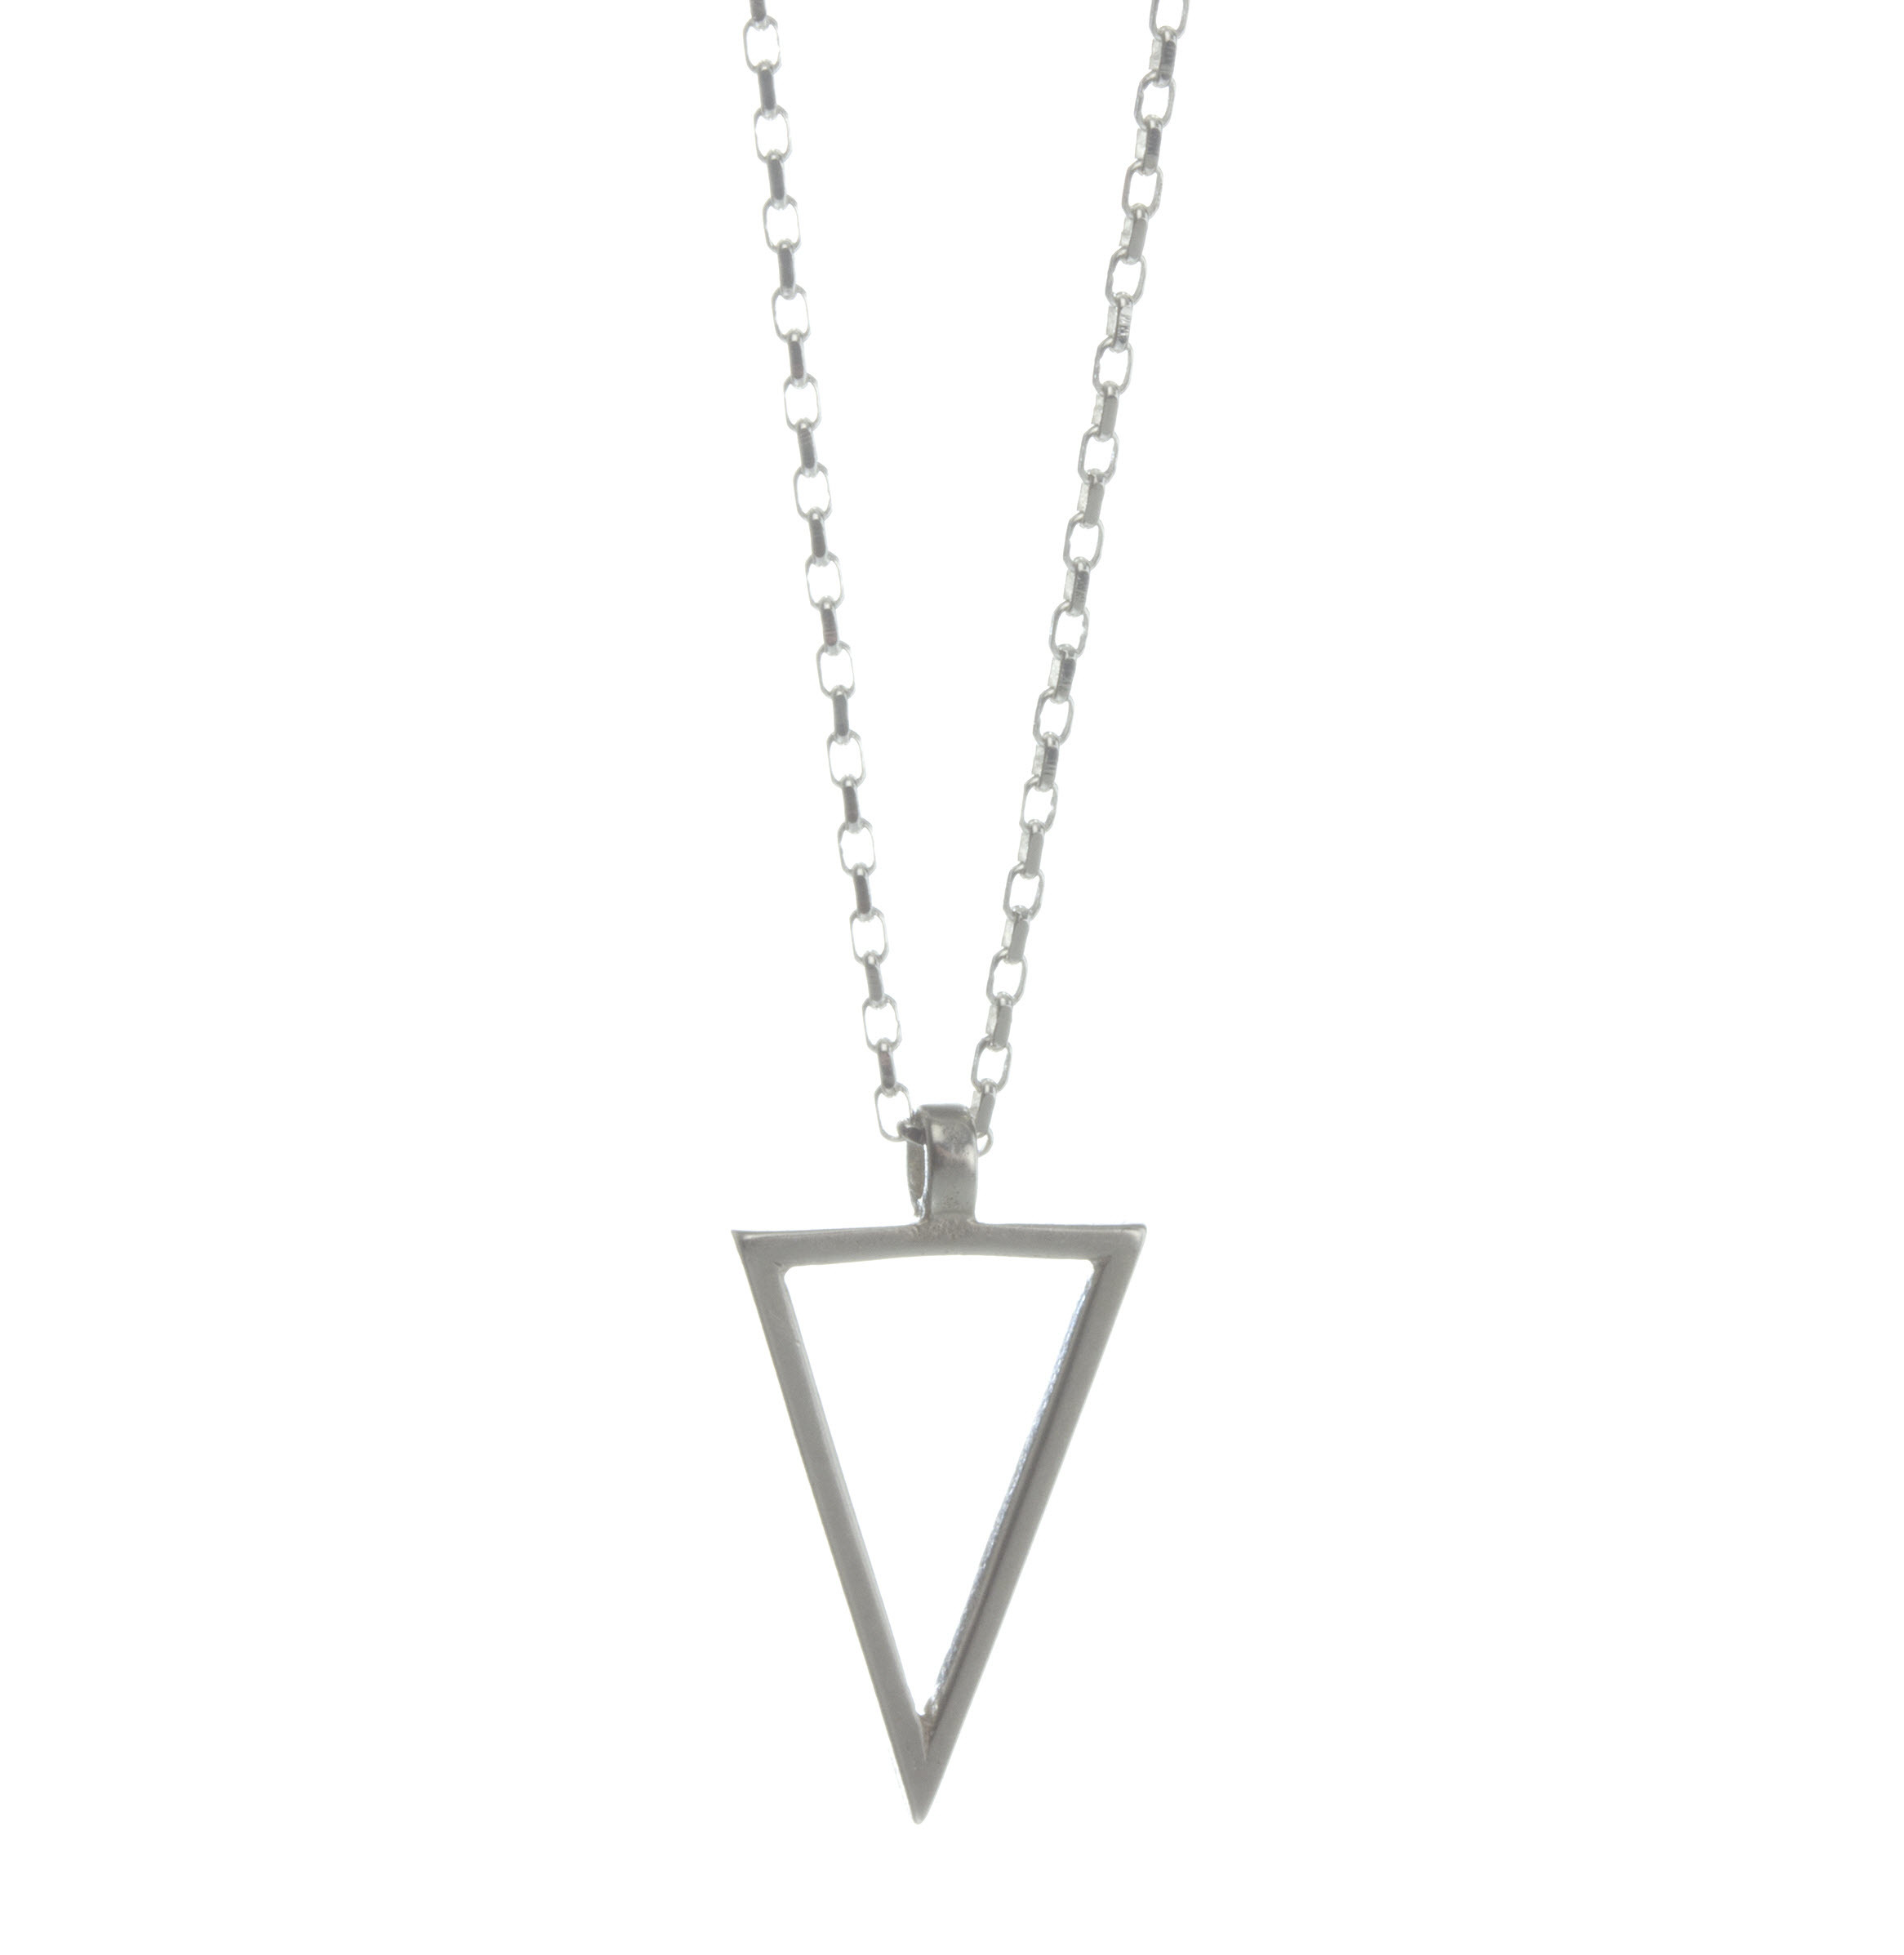 Moto Style: The Dagger Necklace